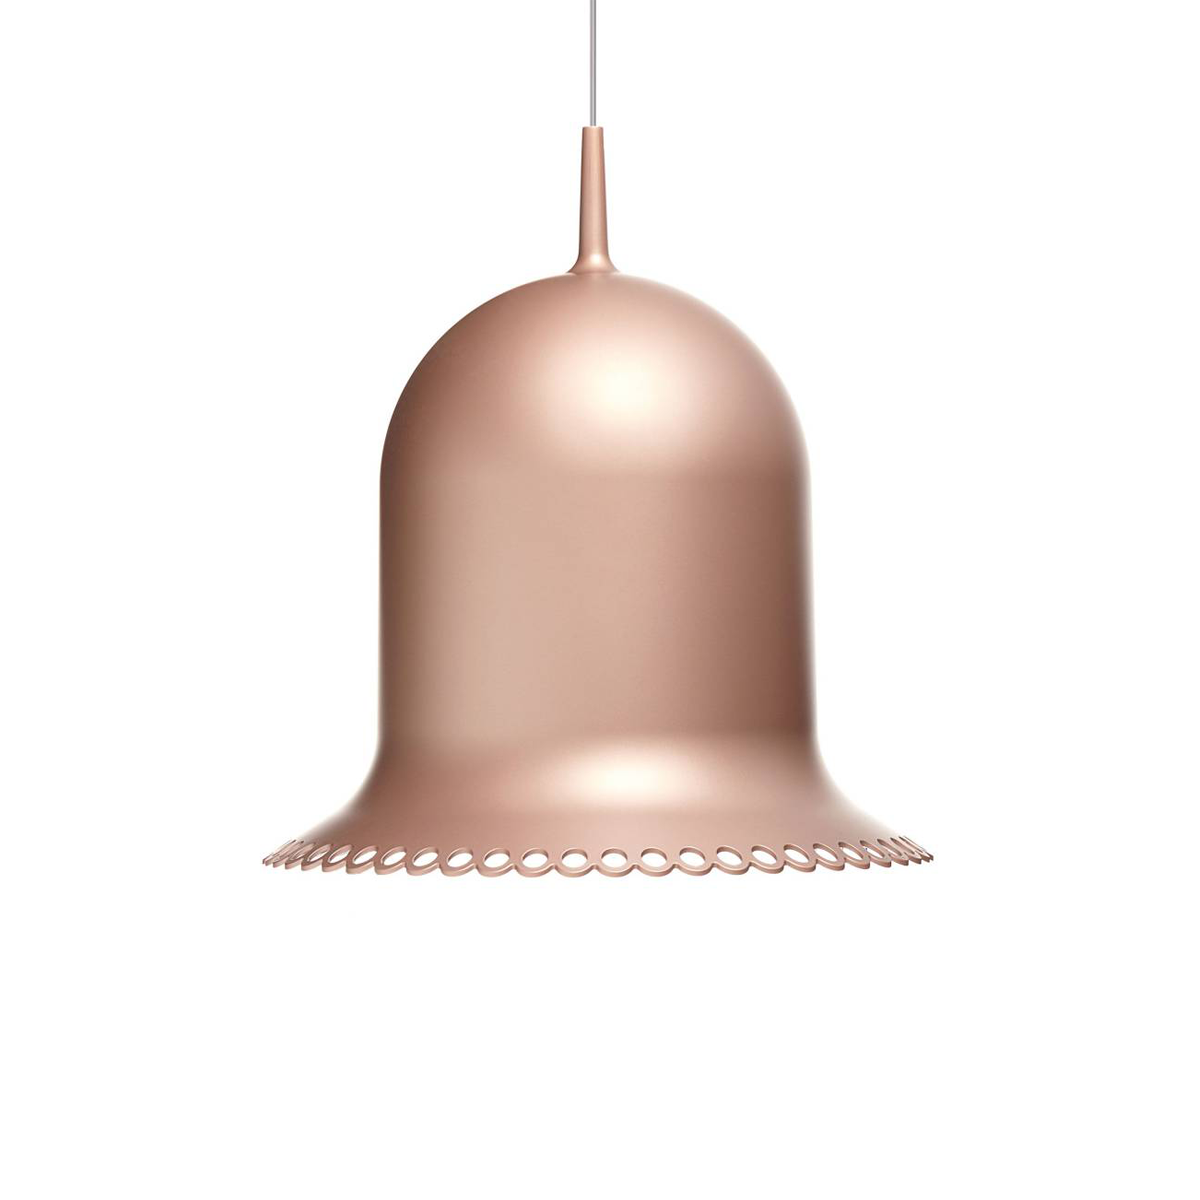 Moooi Lolita Suspension Lamp 鈴噹 吊燈